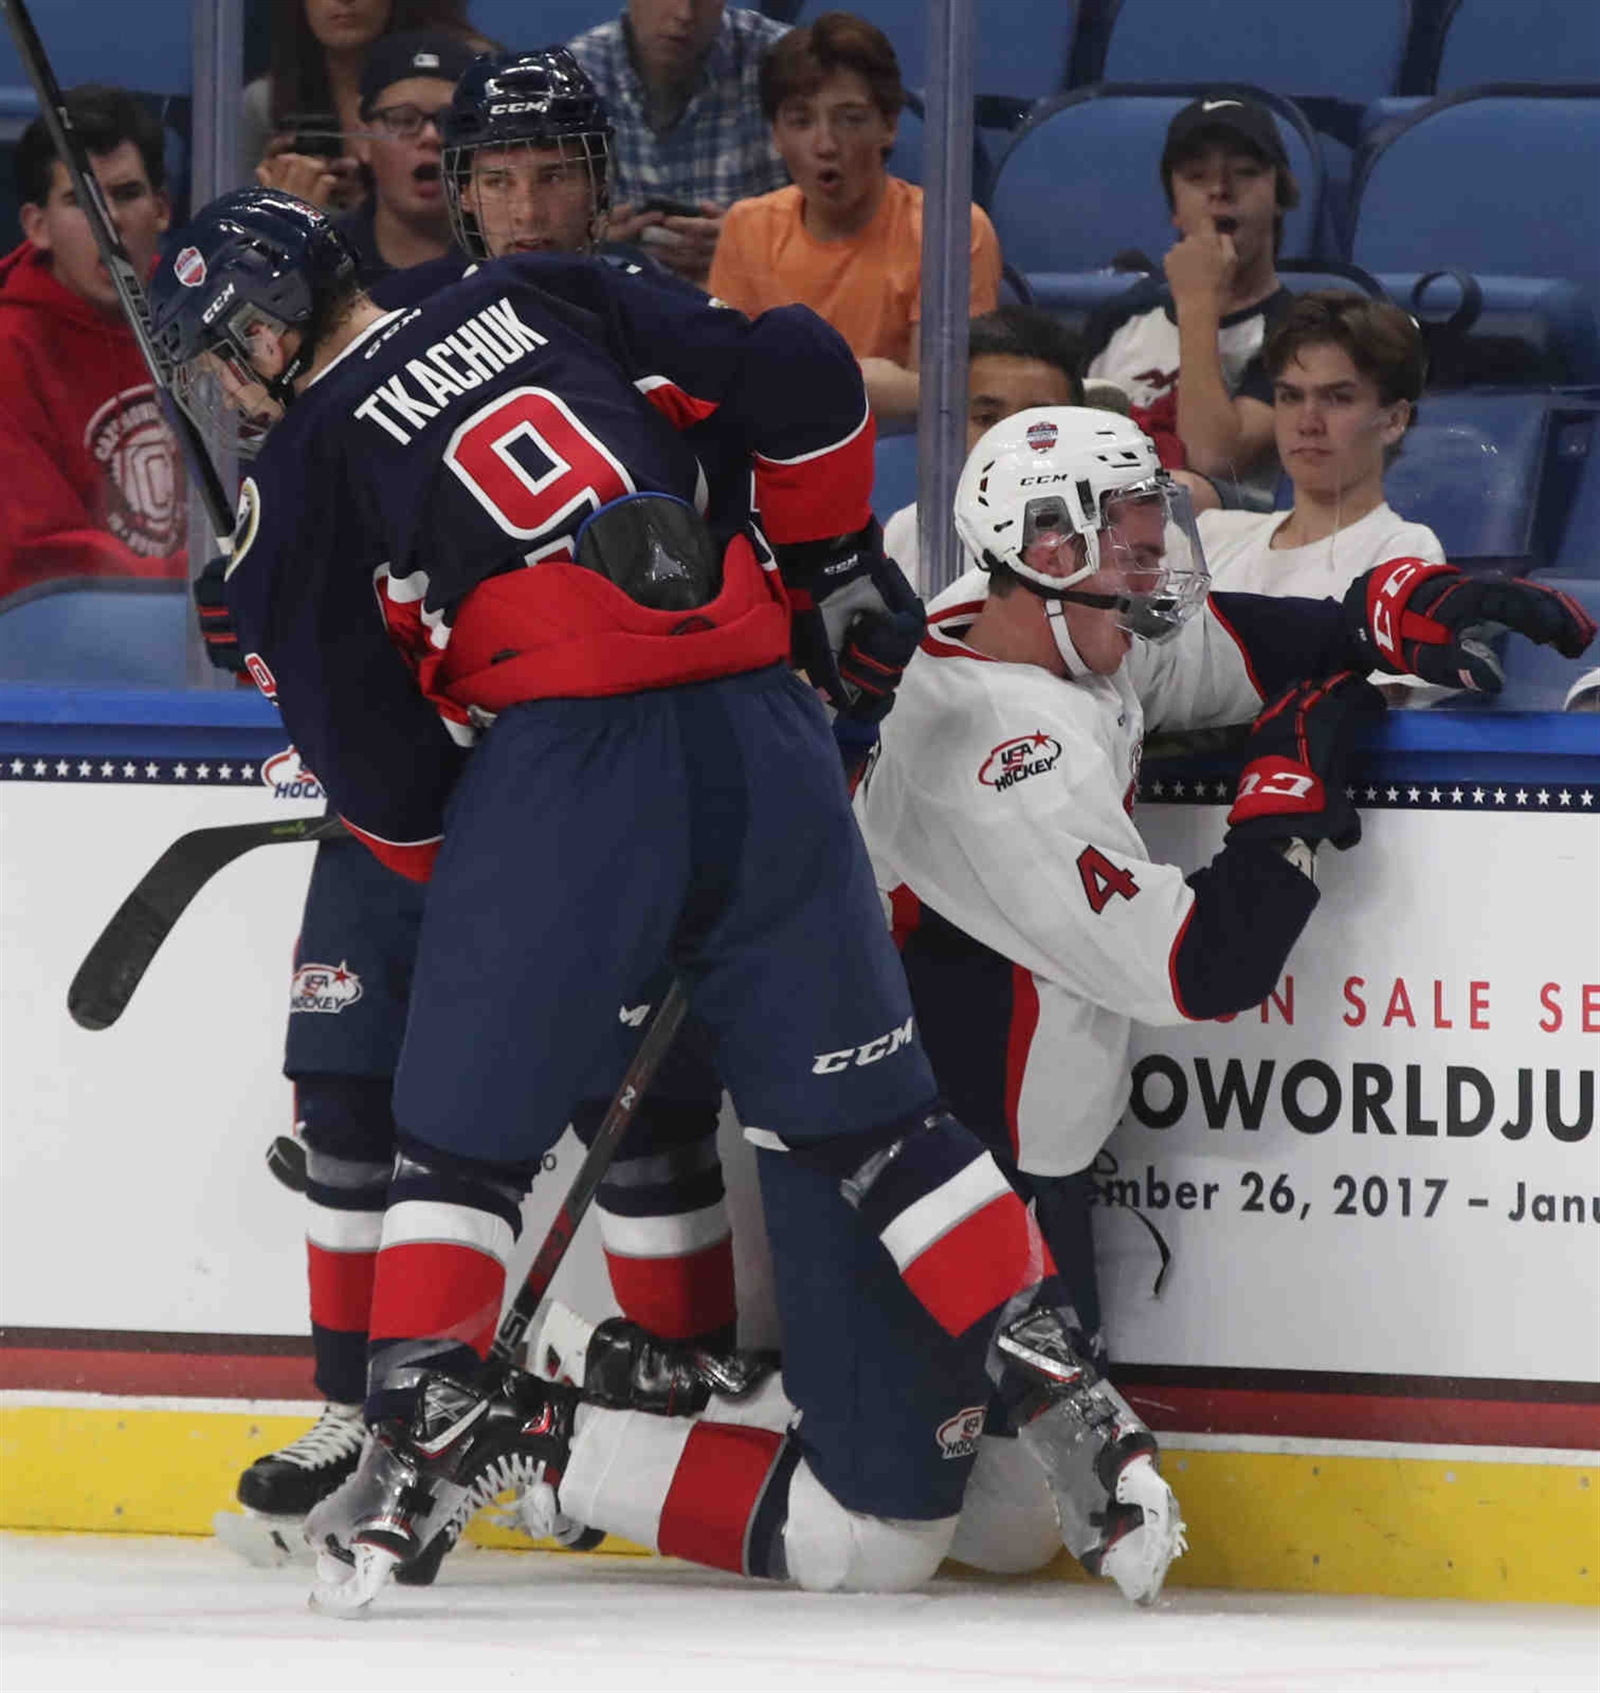 Brady Tkachuk #9 of Team Leetch hammers Cole Krygier #4 of Team Chelios into the boards at the end of the first period at KeyBank Center in Buffalo on Thursday, Sept. 21, 2017.